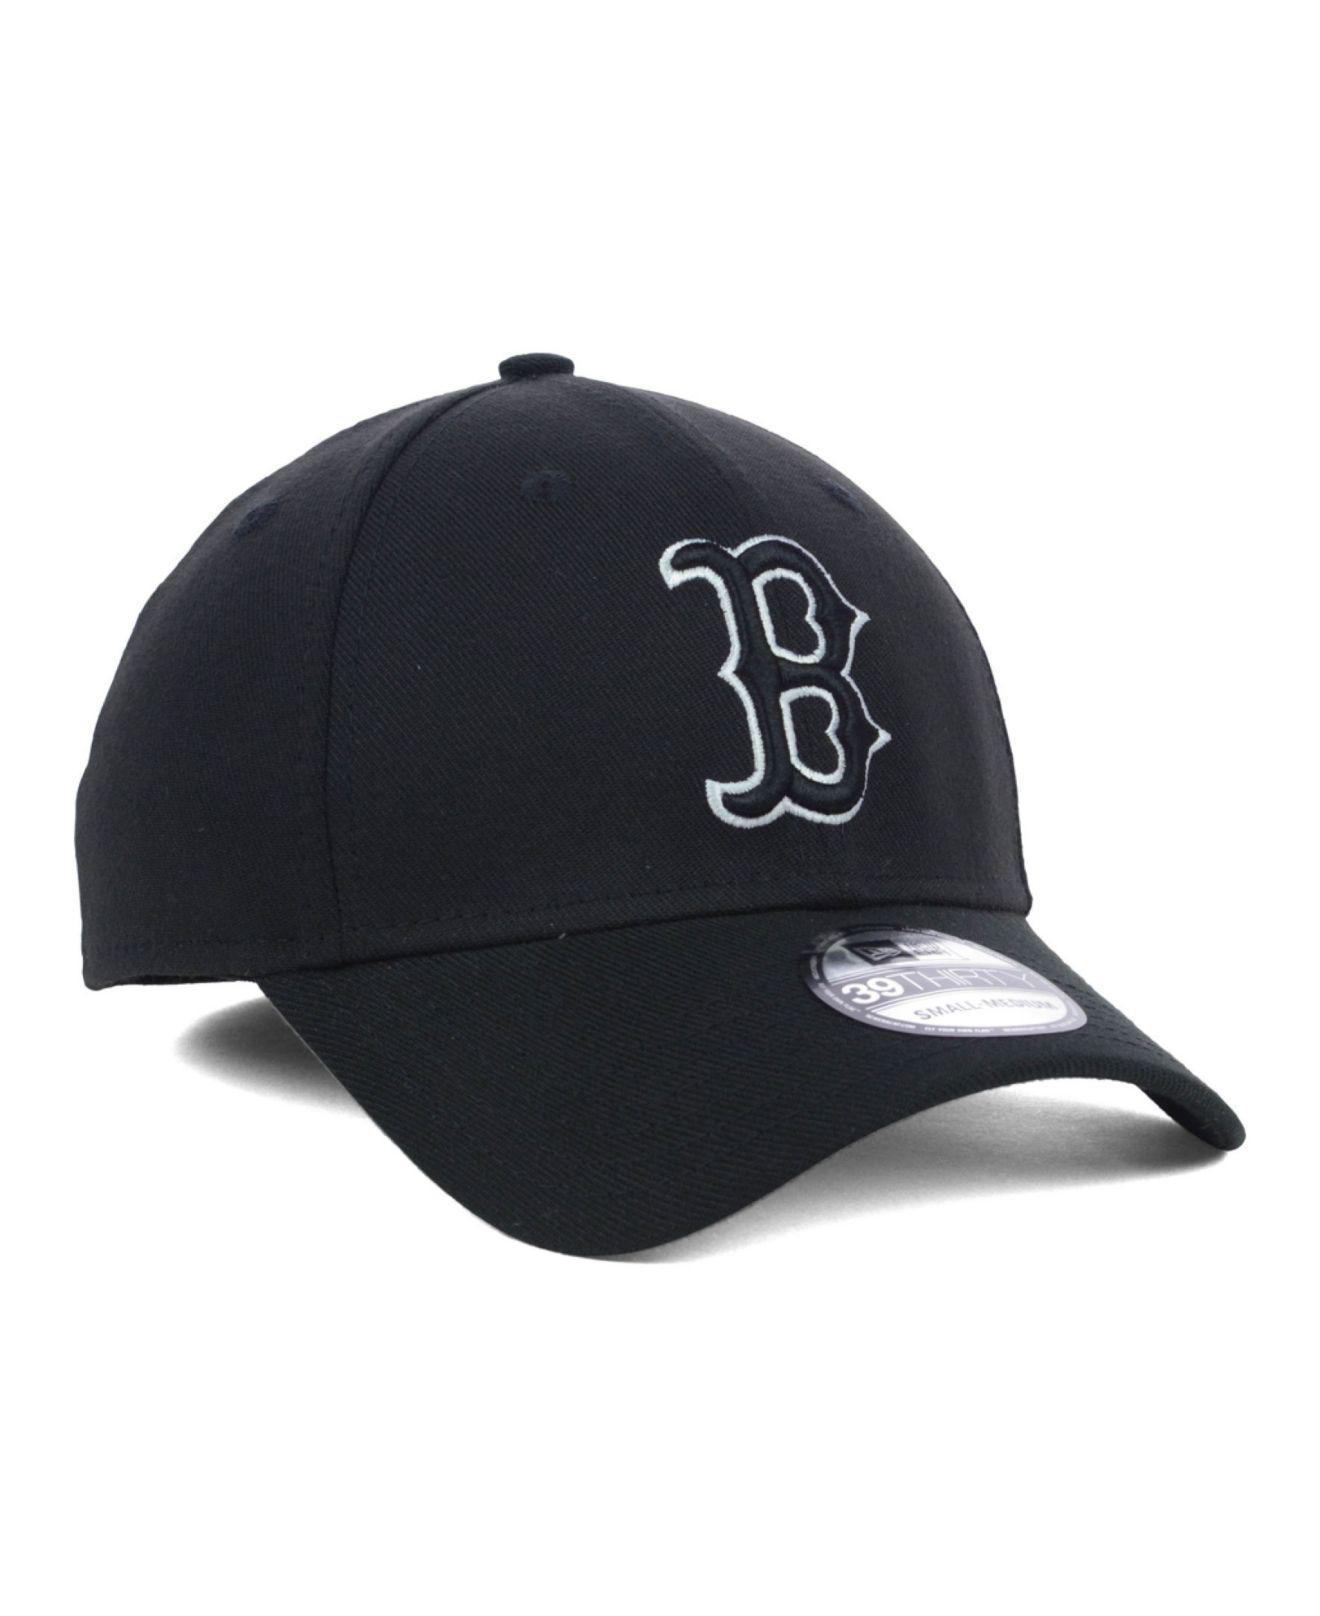 huge selection of 30a65 a4932 ... best price lyst ktz boston red sox black and white classic 39thirty cap  in 2549a f45a1